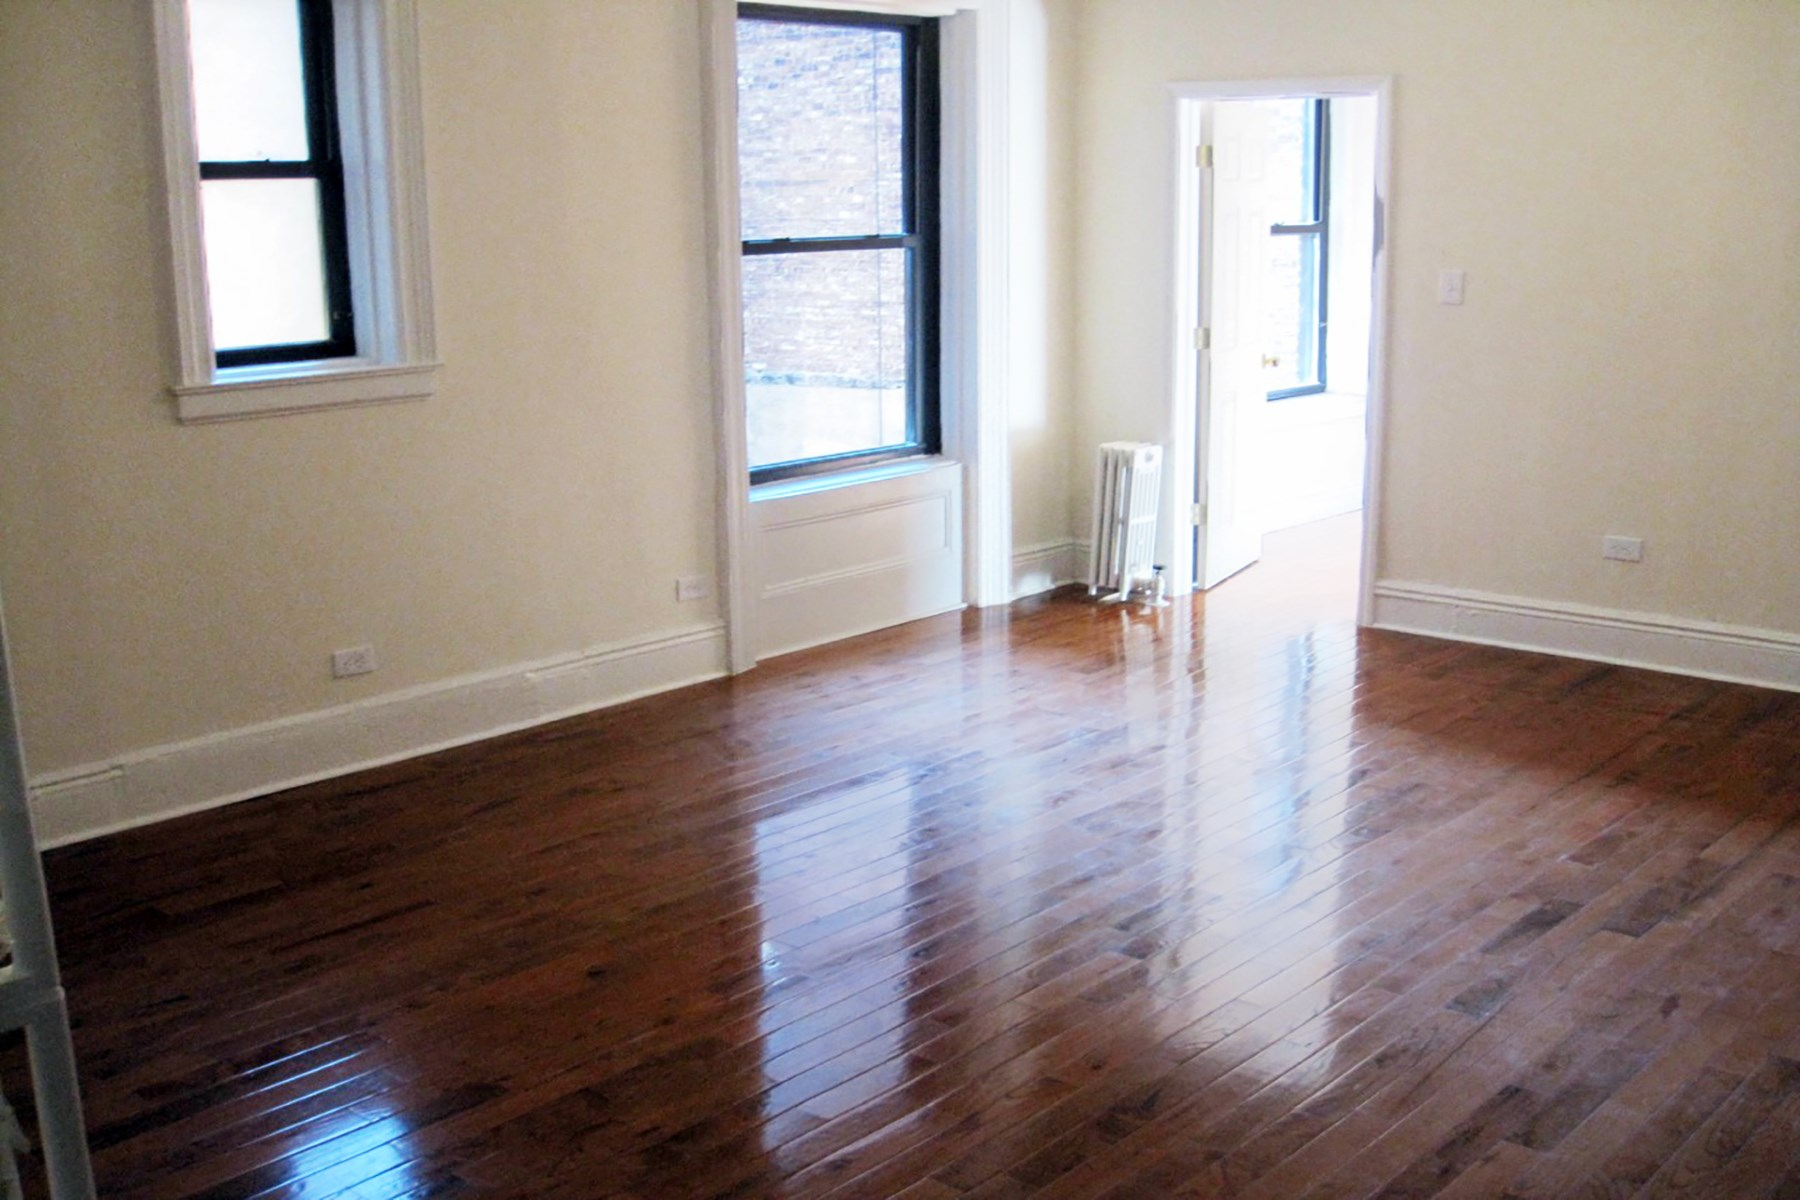 Property Of 300 West 107th Street, Apt. 5C